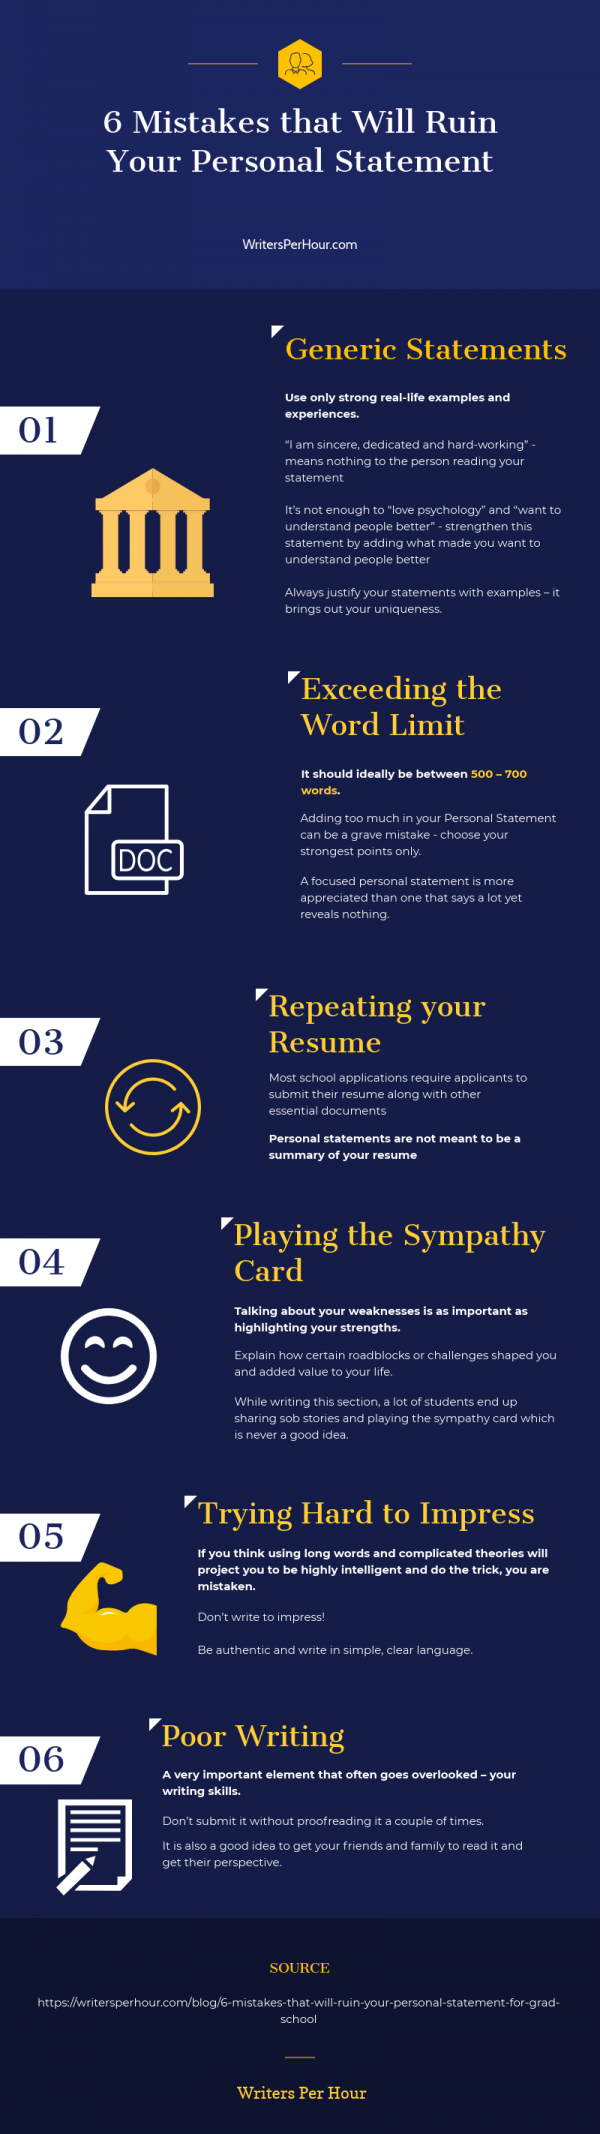 6 Mistakes That Will Ruin Your Personal Statement #infographic